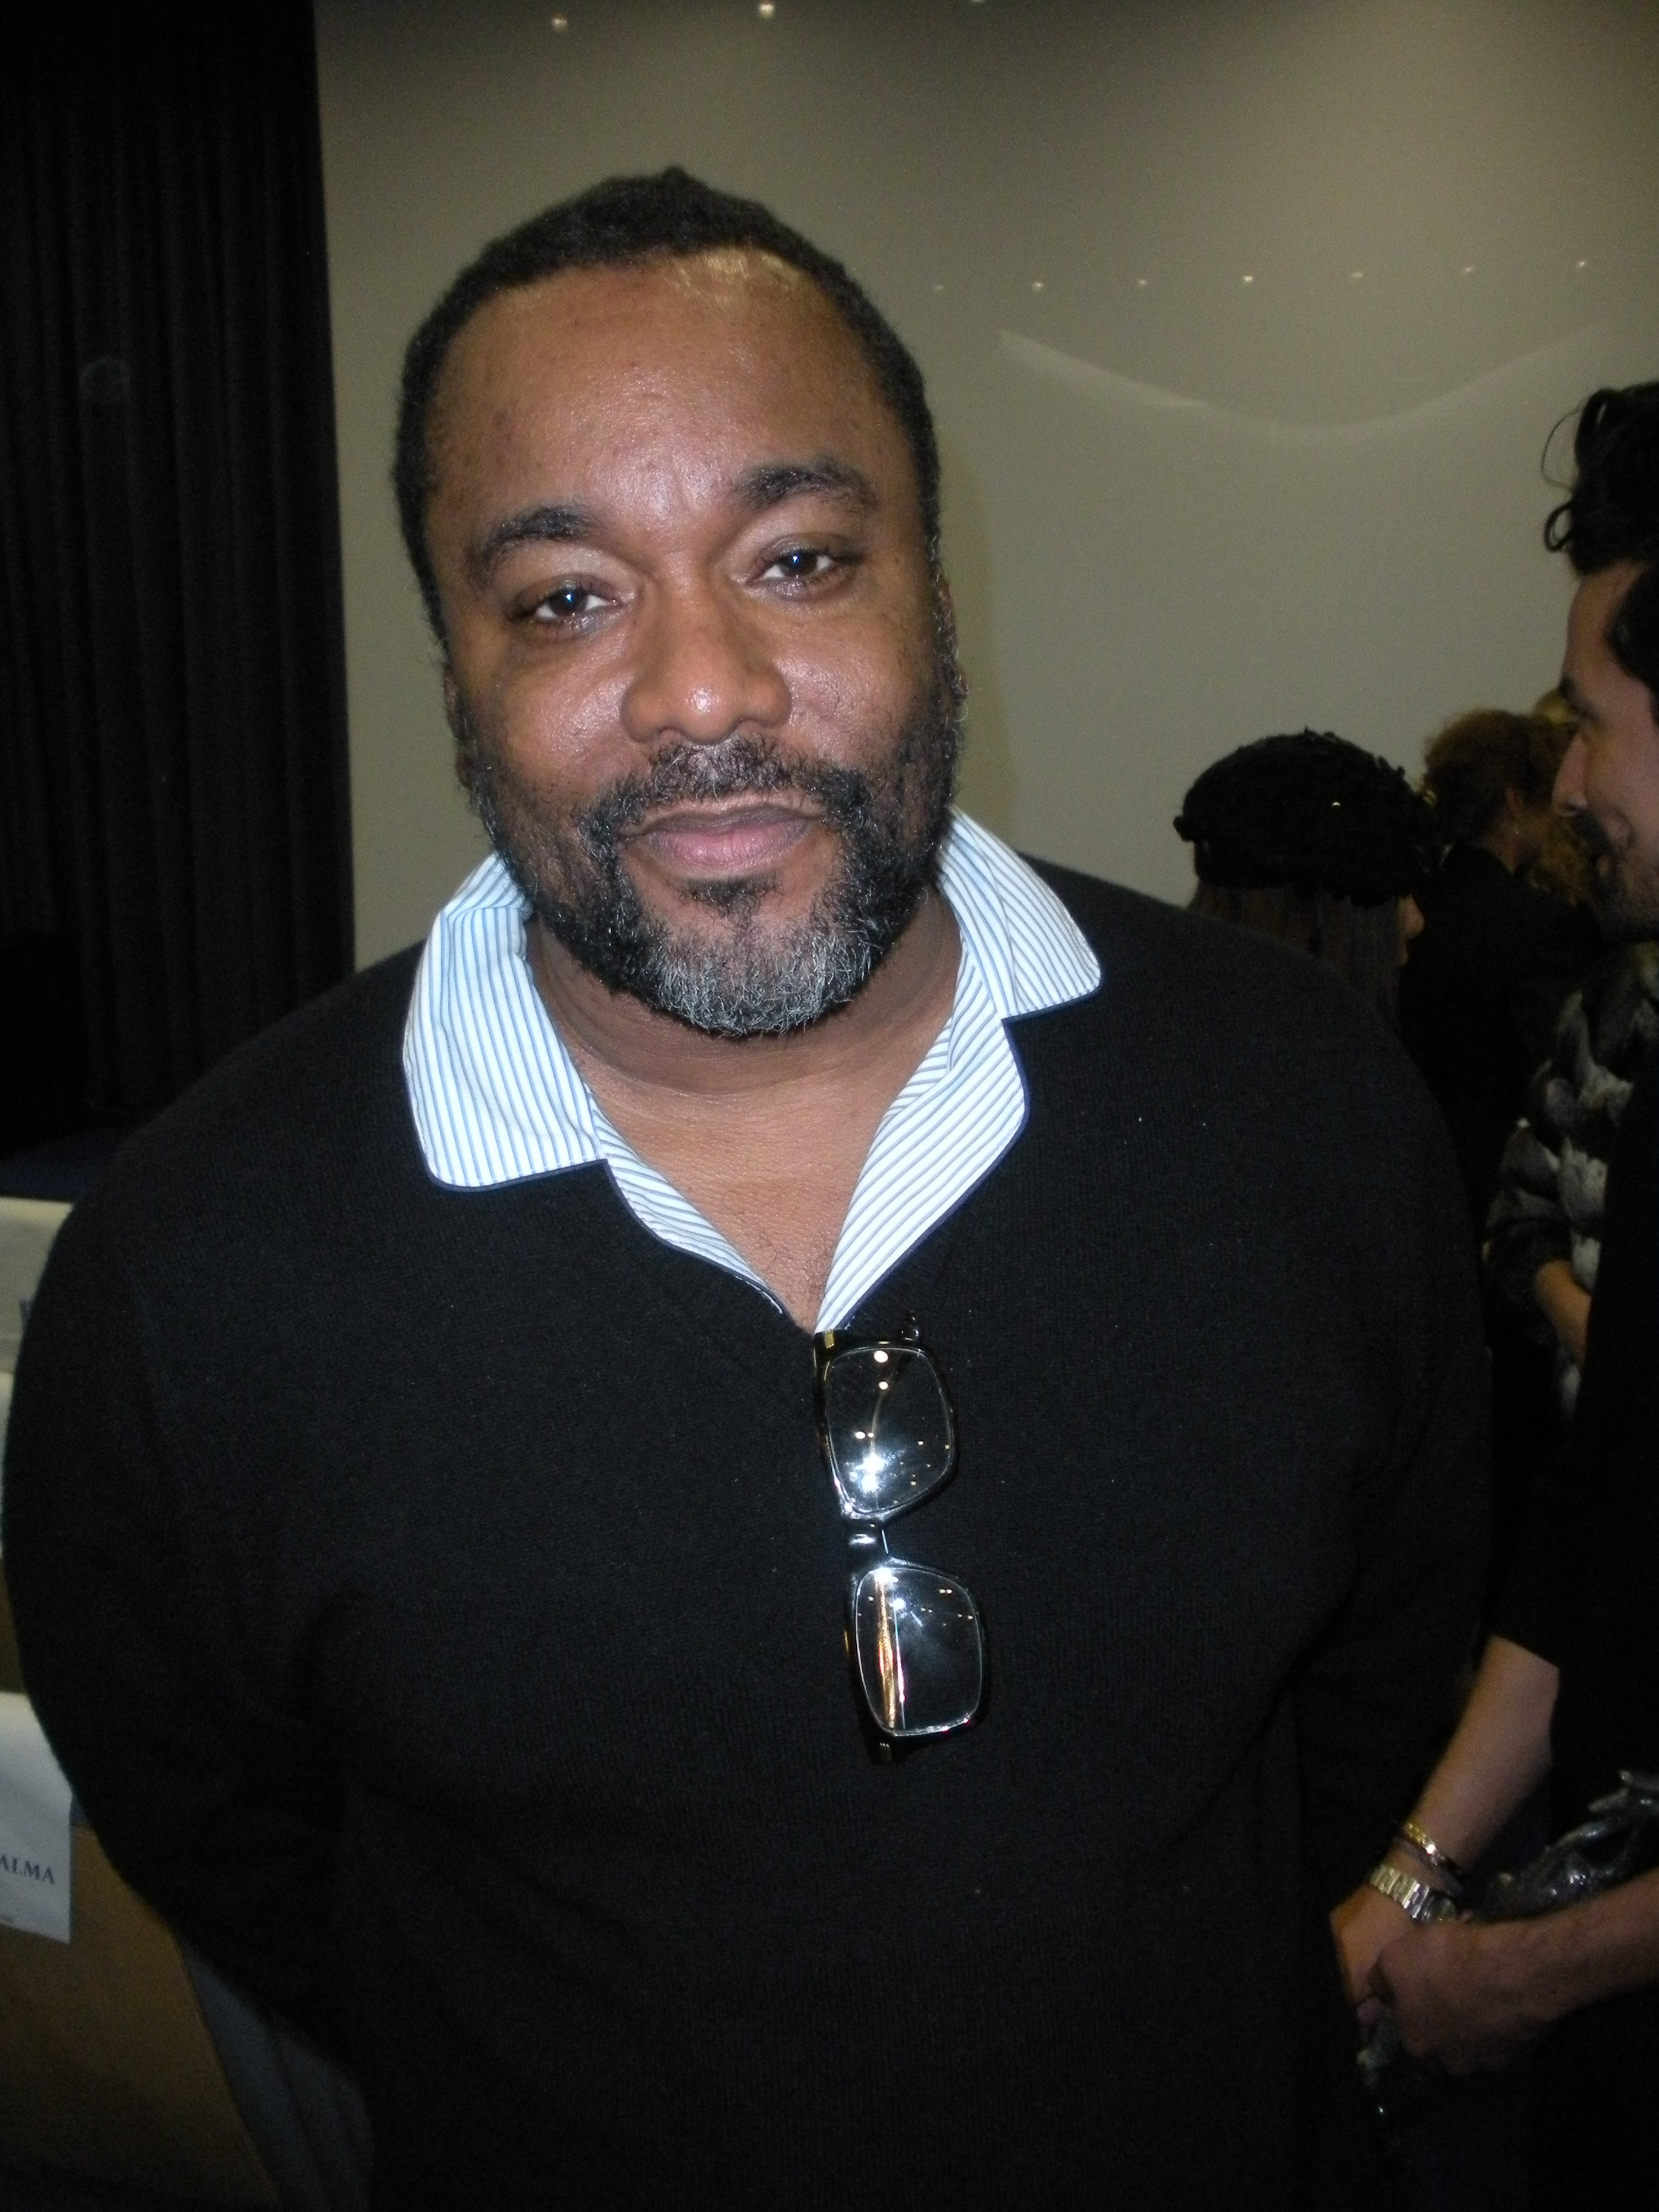 lee daniels and moniquelee daniels empire, lee daniels after effects, lee daniels wife, lee daniels selma, lee daniels en couple, lee daniels the butler, lee daniels star, lee daniels the butler watch online, lee daniels instagram, lee daniels star en streaming, lee daniels, lee daniels net worth, lee daniels boyfriend, lee daniels movies, lee daniels the butler trailer, lee daniels imdb, lee daniels and monique, lee daniels entertainment, lee daniels illinois, lee daniels the butler wiki